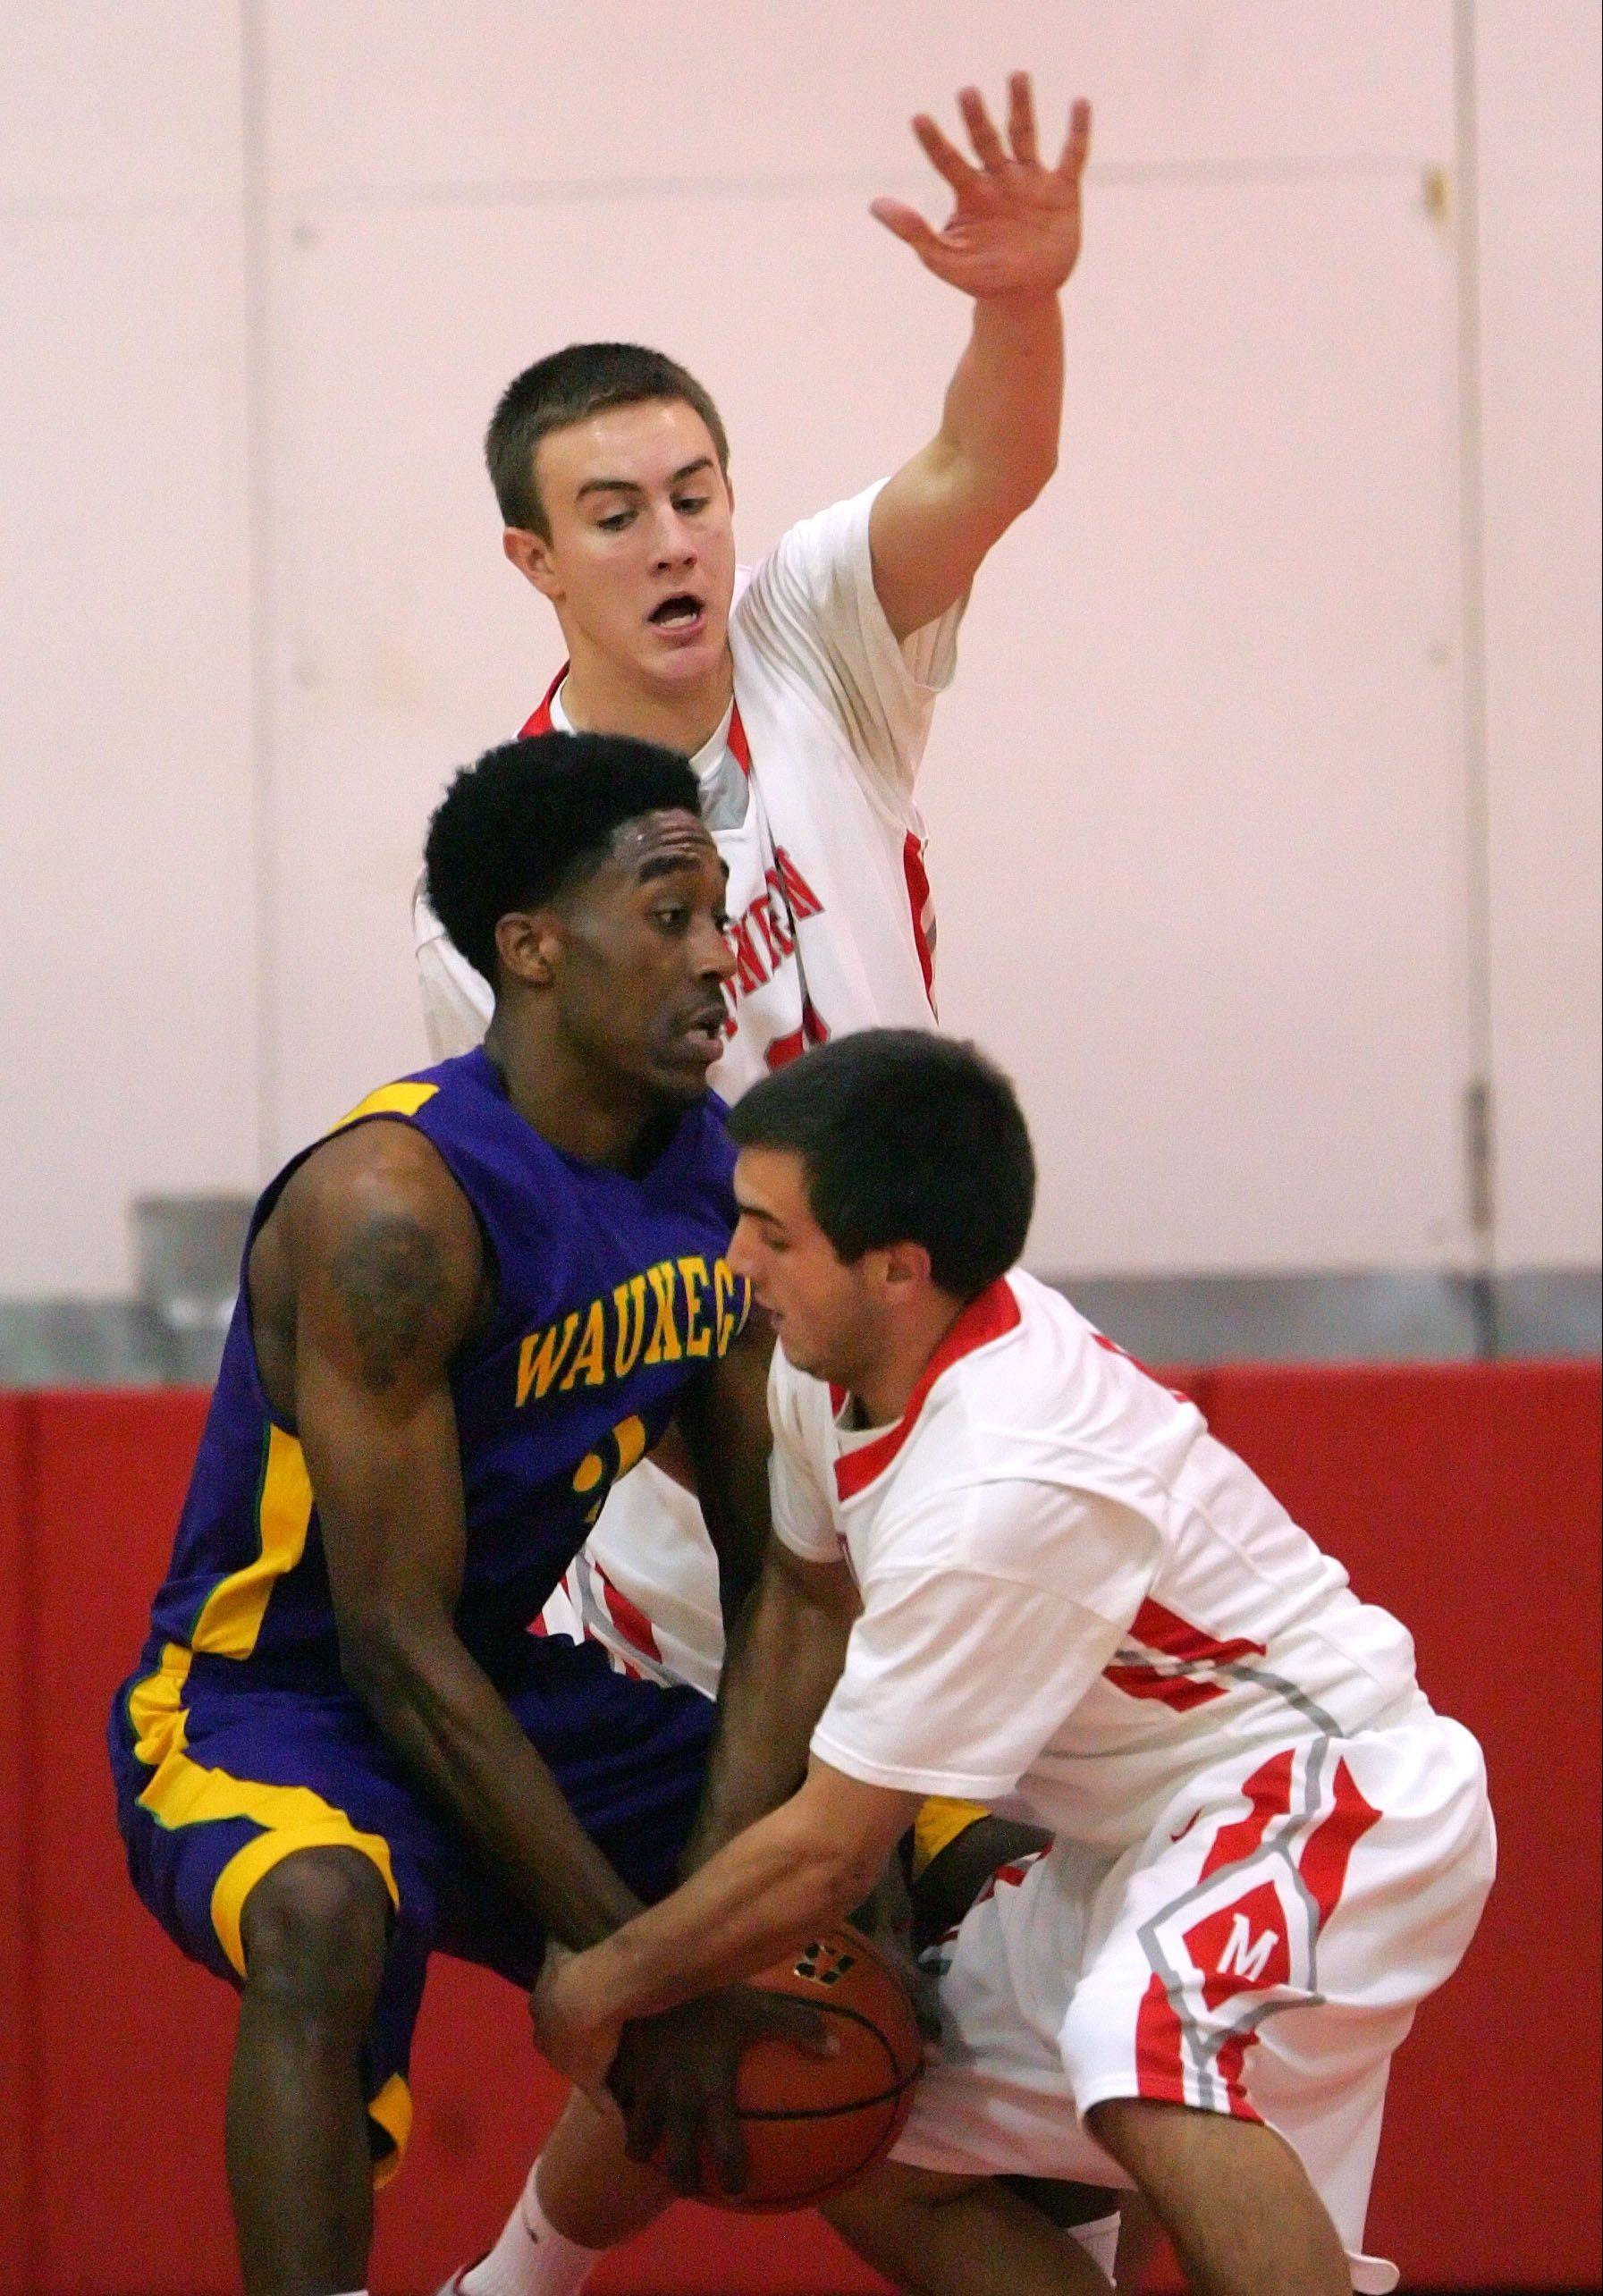 Mundelein's Sean O'Brien (All-Senior, All-Playmaker, All-Rebounding, All-Tall), back, and Thomas Gandolfi (All-Small) apply tough defense against Waukegan's Cornell Fort earlier this season.